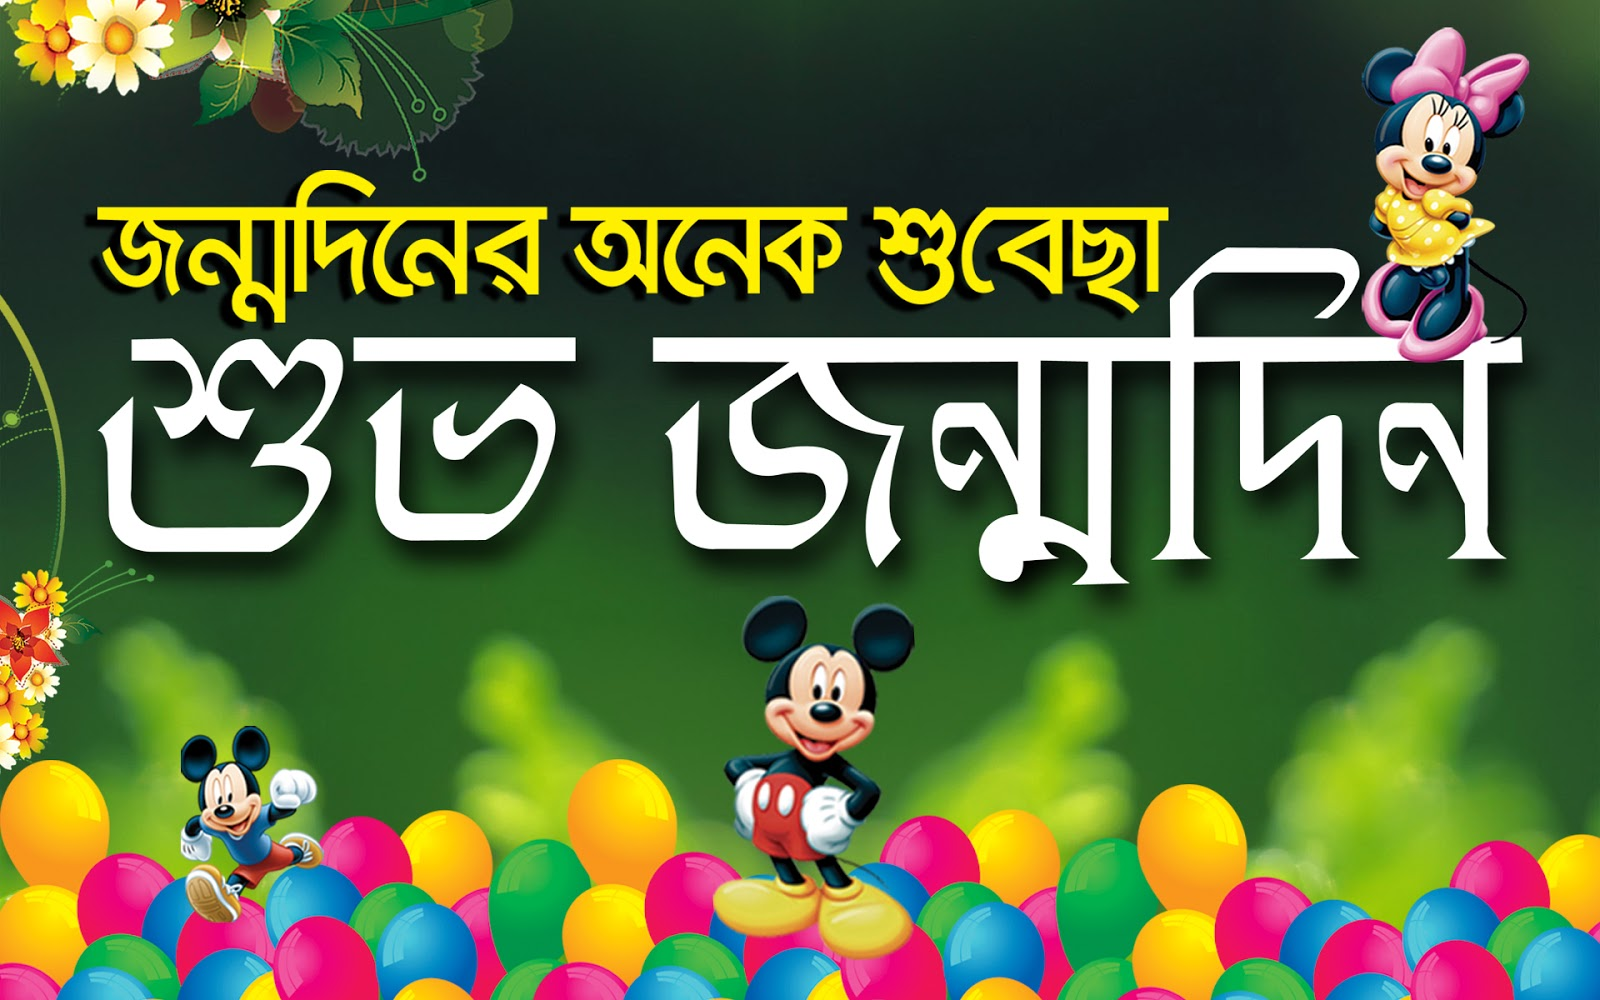 bengali birthday image ; shuvo-jonmodin-bengali-happy-birthday-hd-wallpaper01